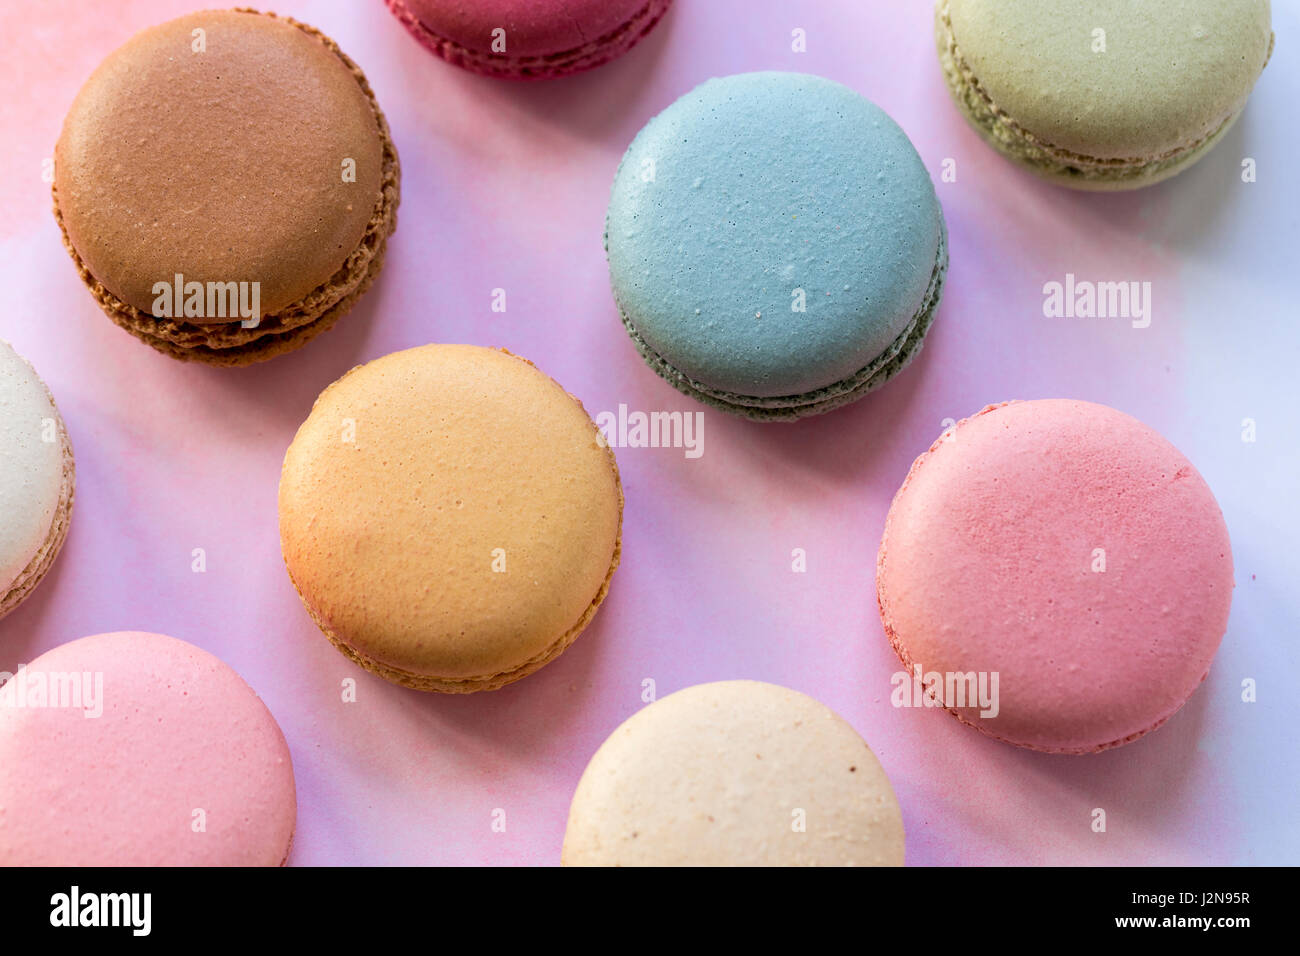 Assorted macarons - Stock Image